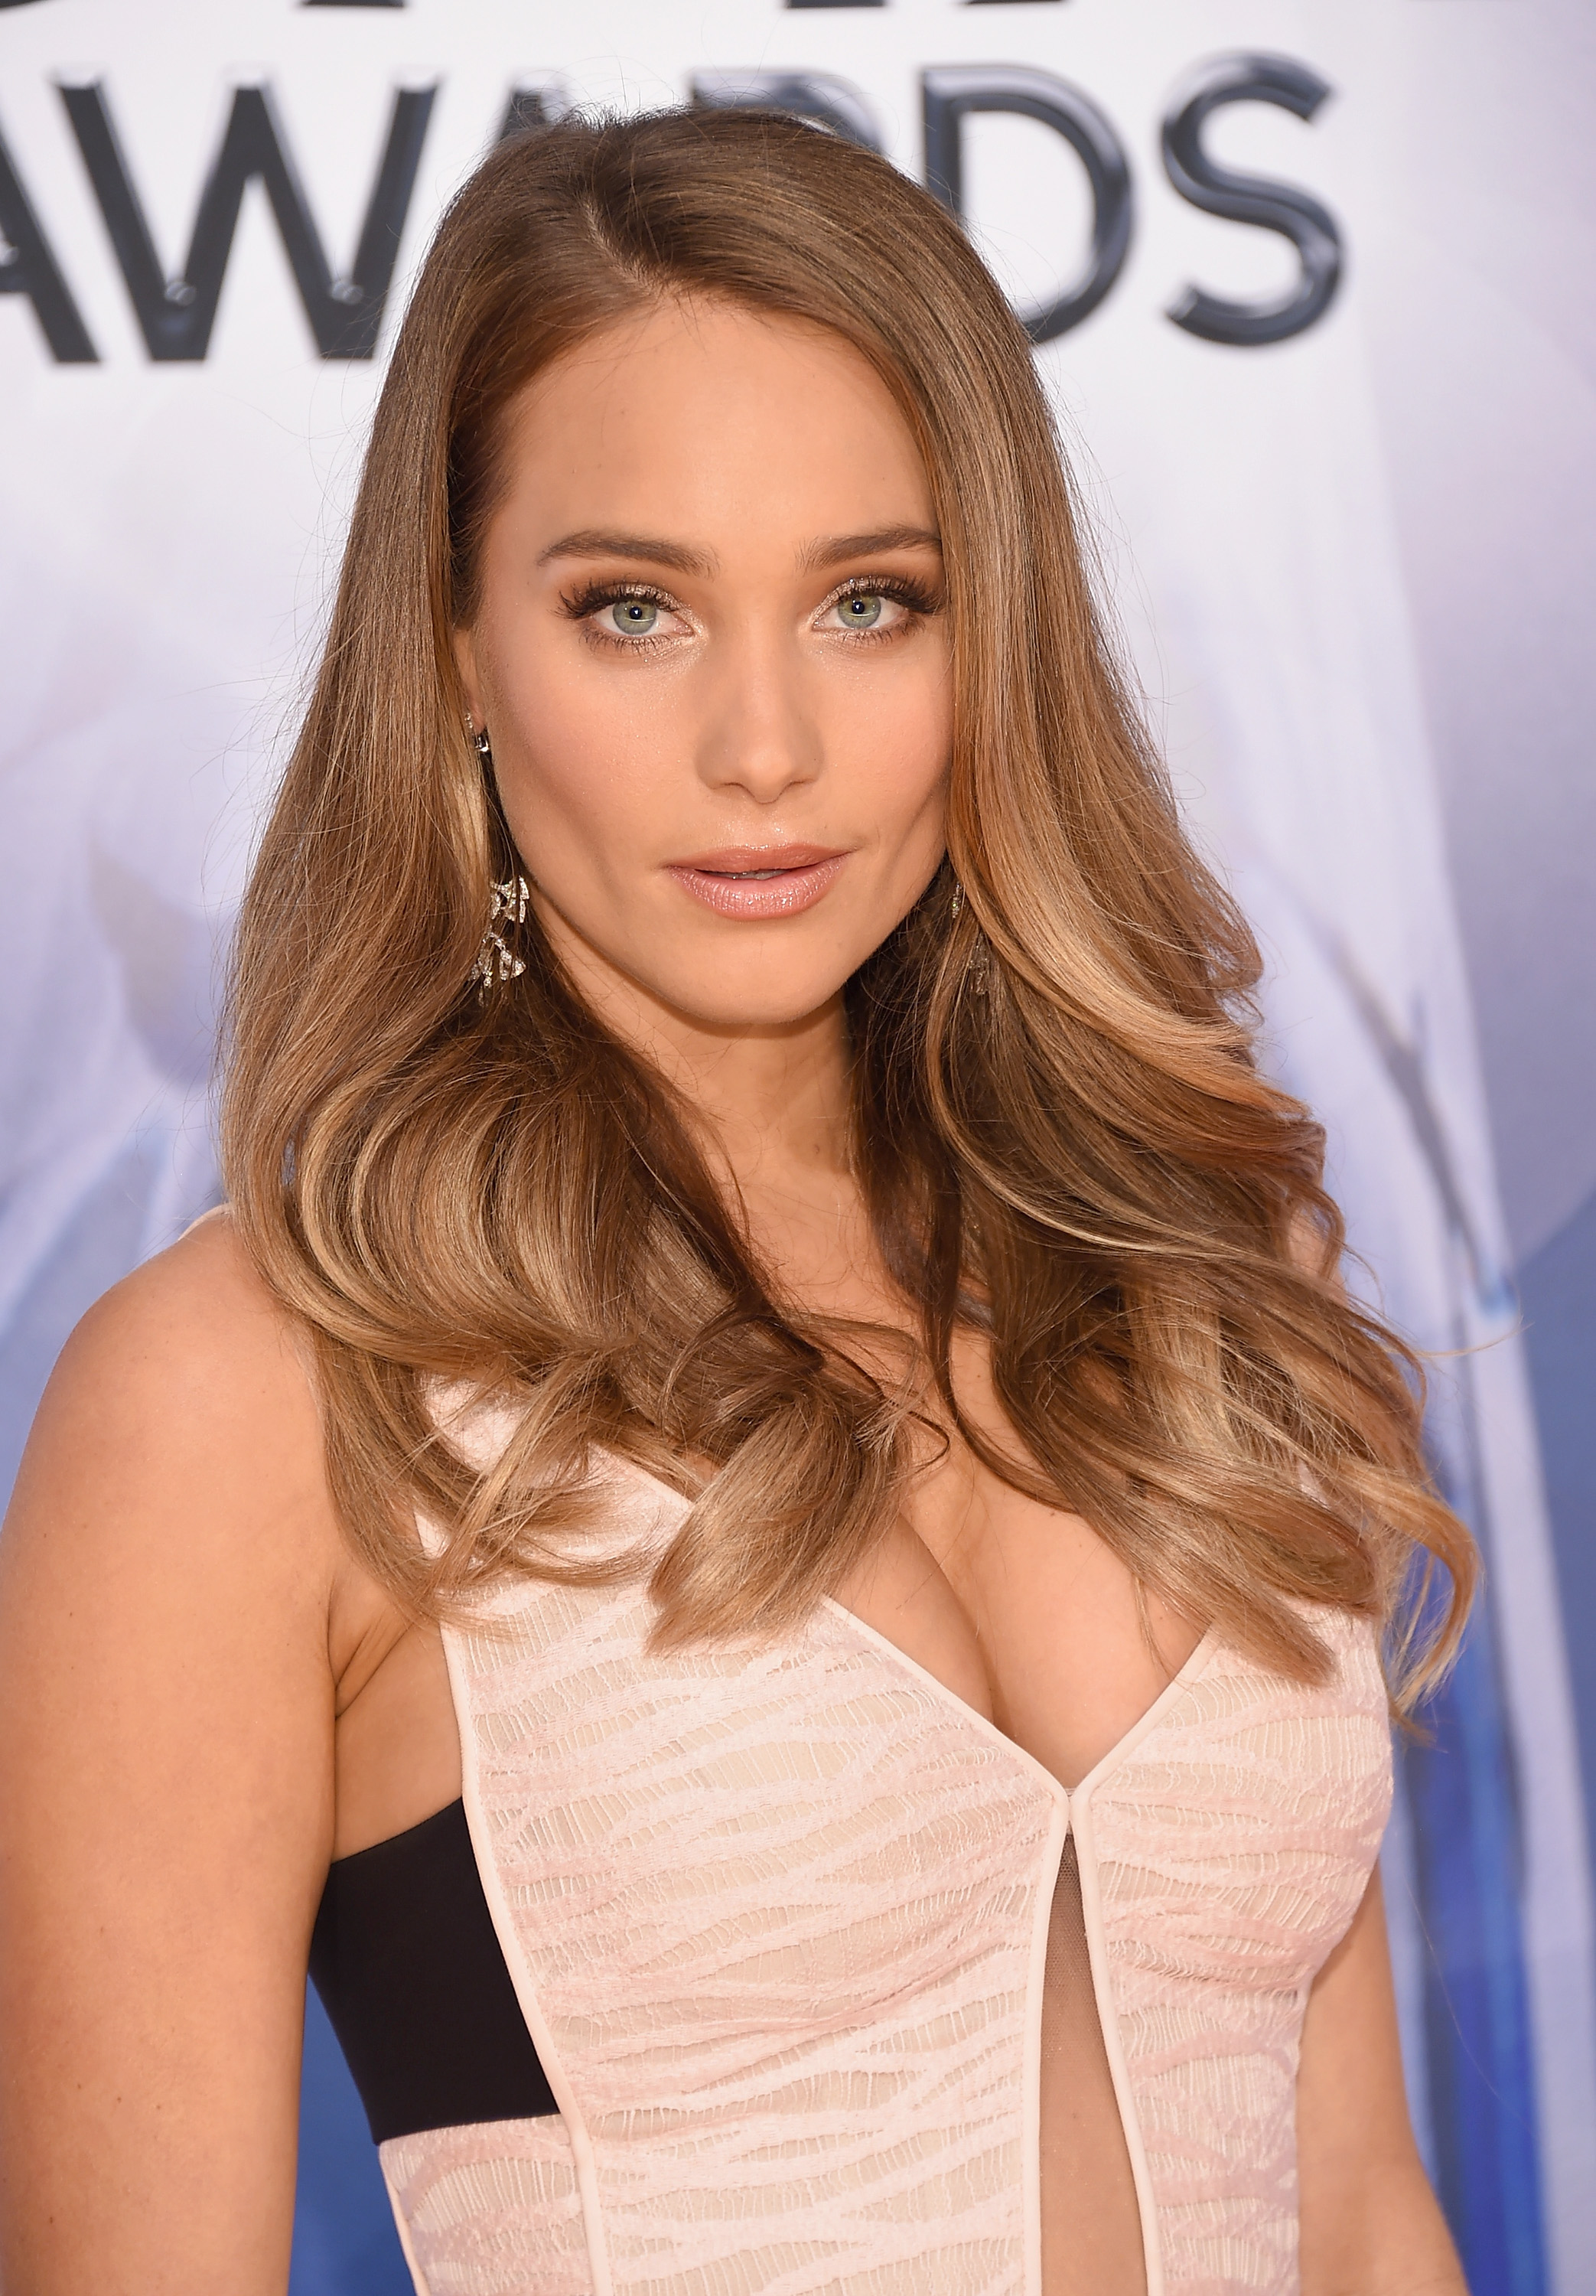 Cleavage Hannah Davis nudes (11 foto and video), Topless, Is a cute, Boobs, butt 2020